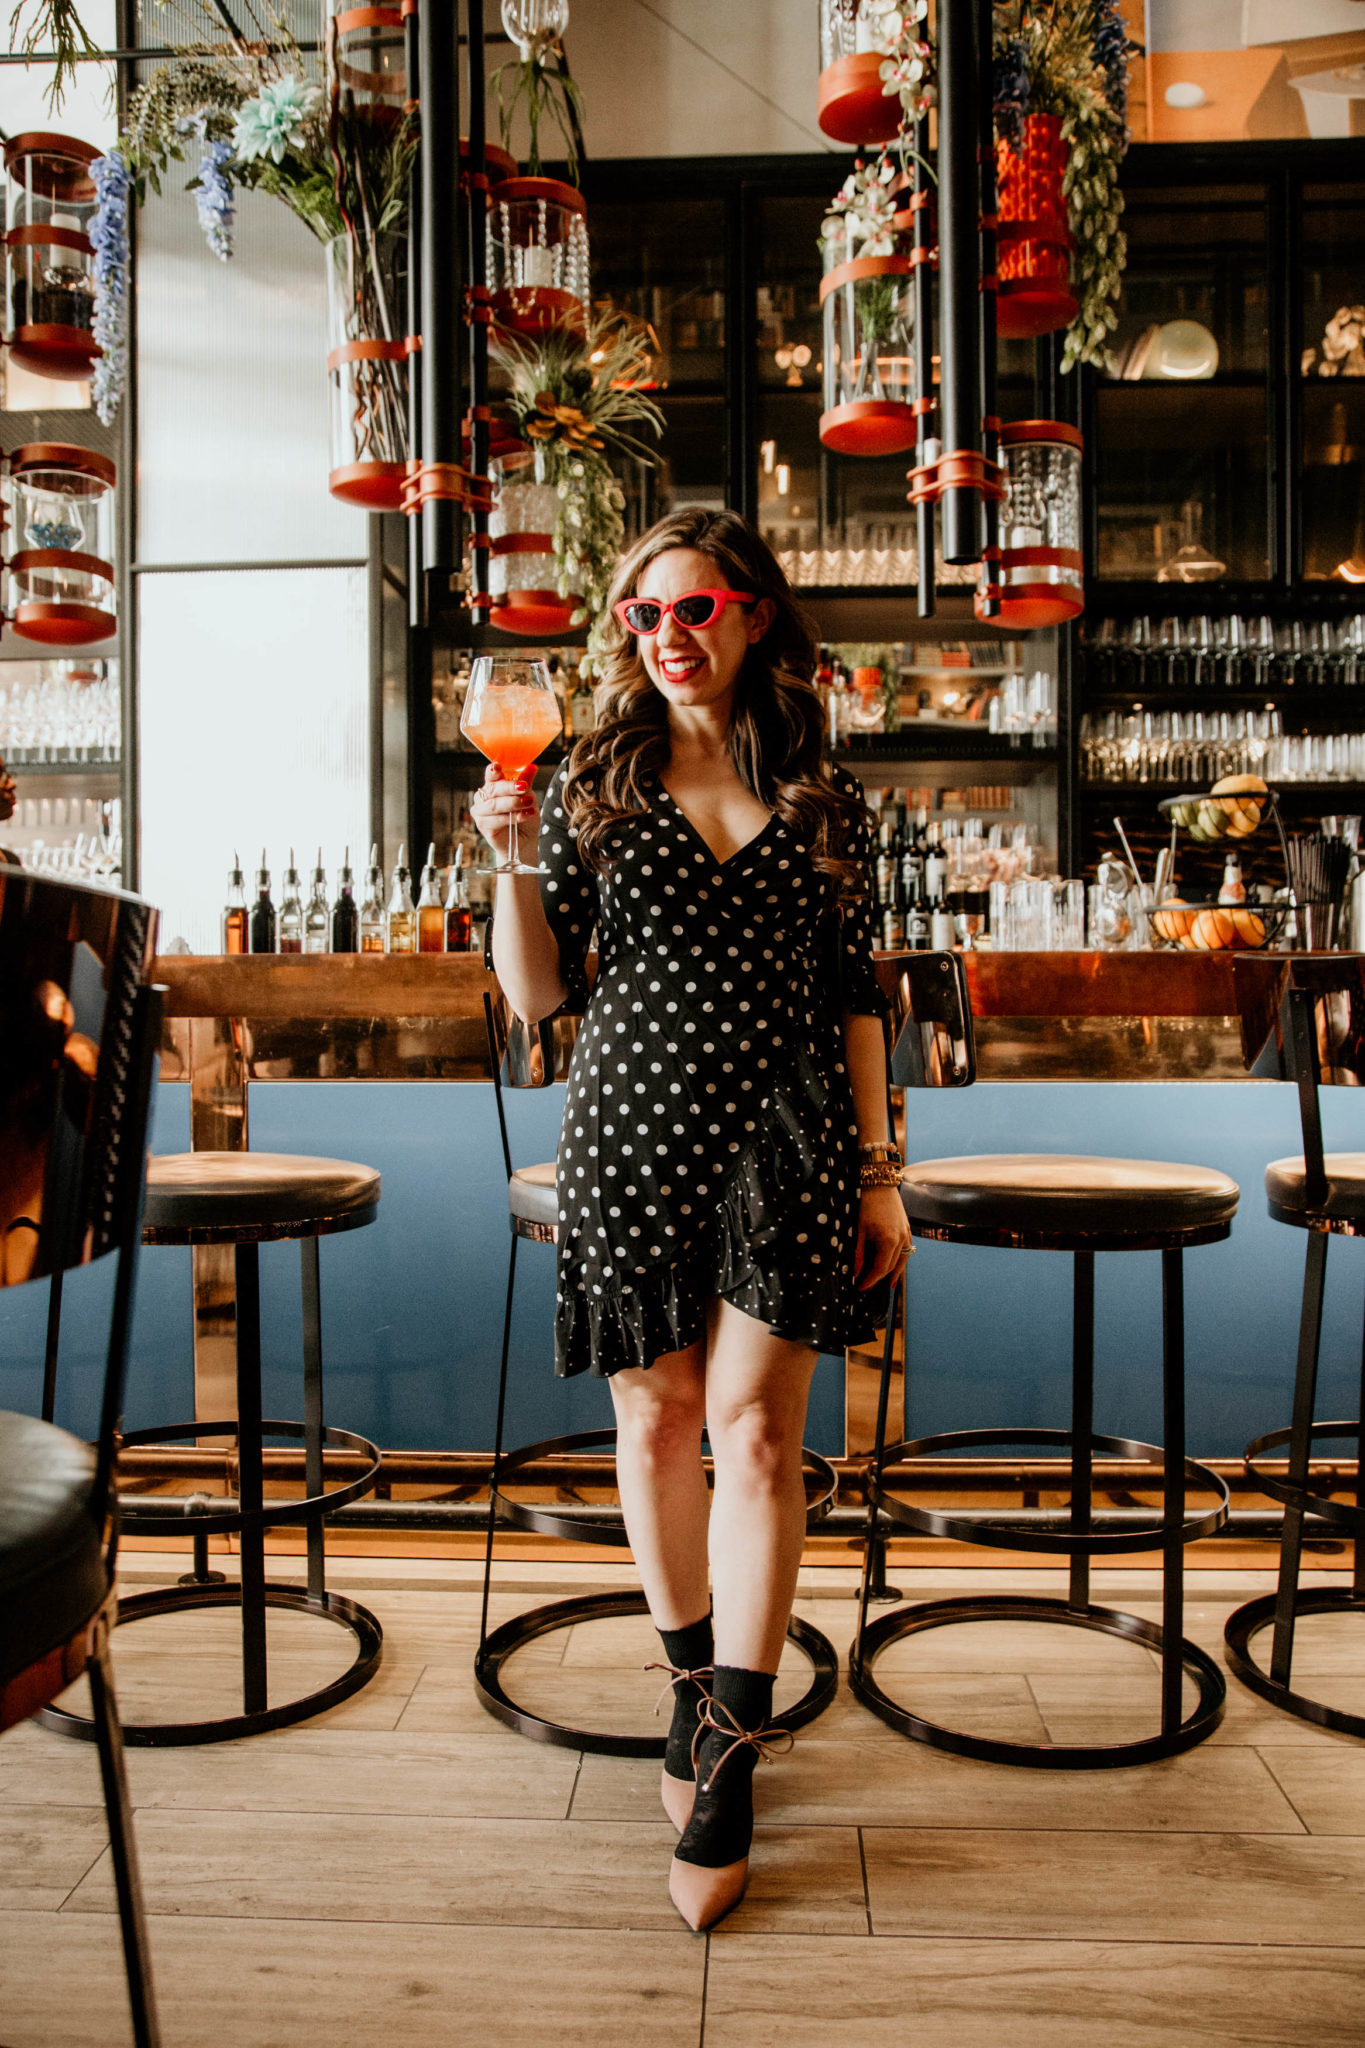 The Golden Girl: Style Beauty Tips by Chicago Fashion Blogger Chicago fashion blog glass